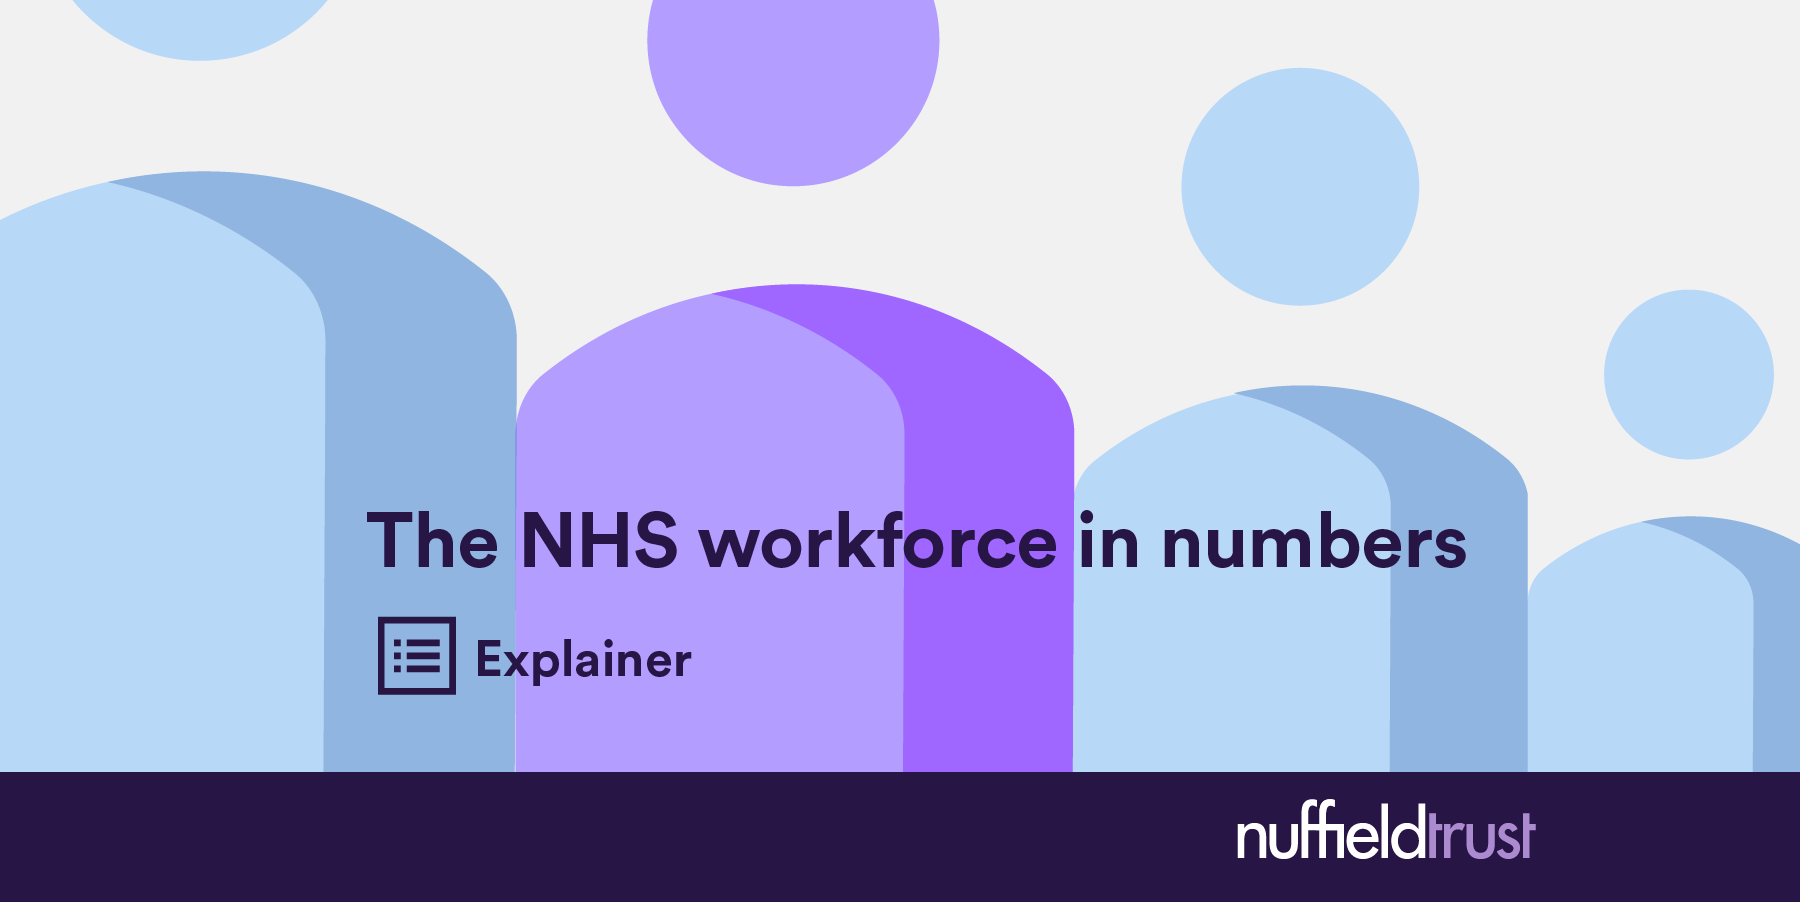 Nine Out Of 10 Hospitals Are Short Of Nurses Uk News >> The Nhs Workforce In Numbers The Nuffield Trust